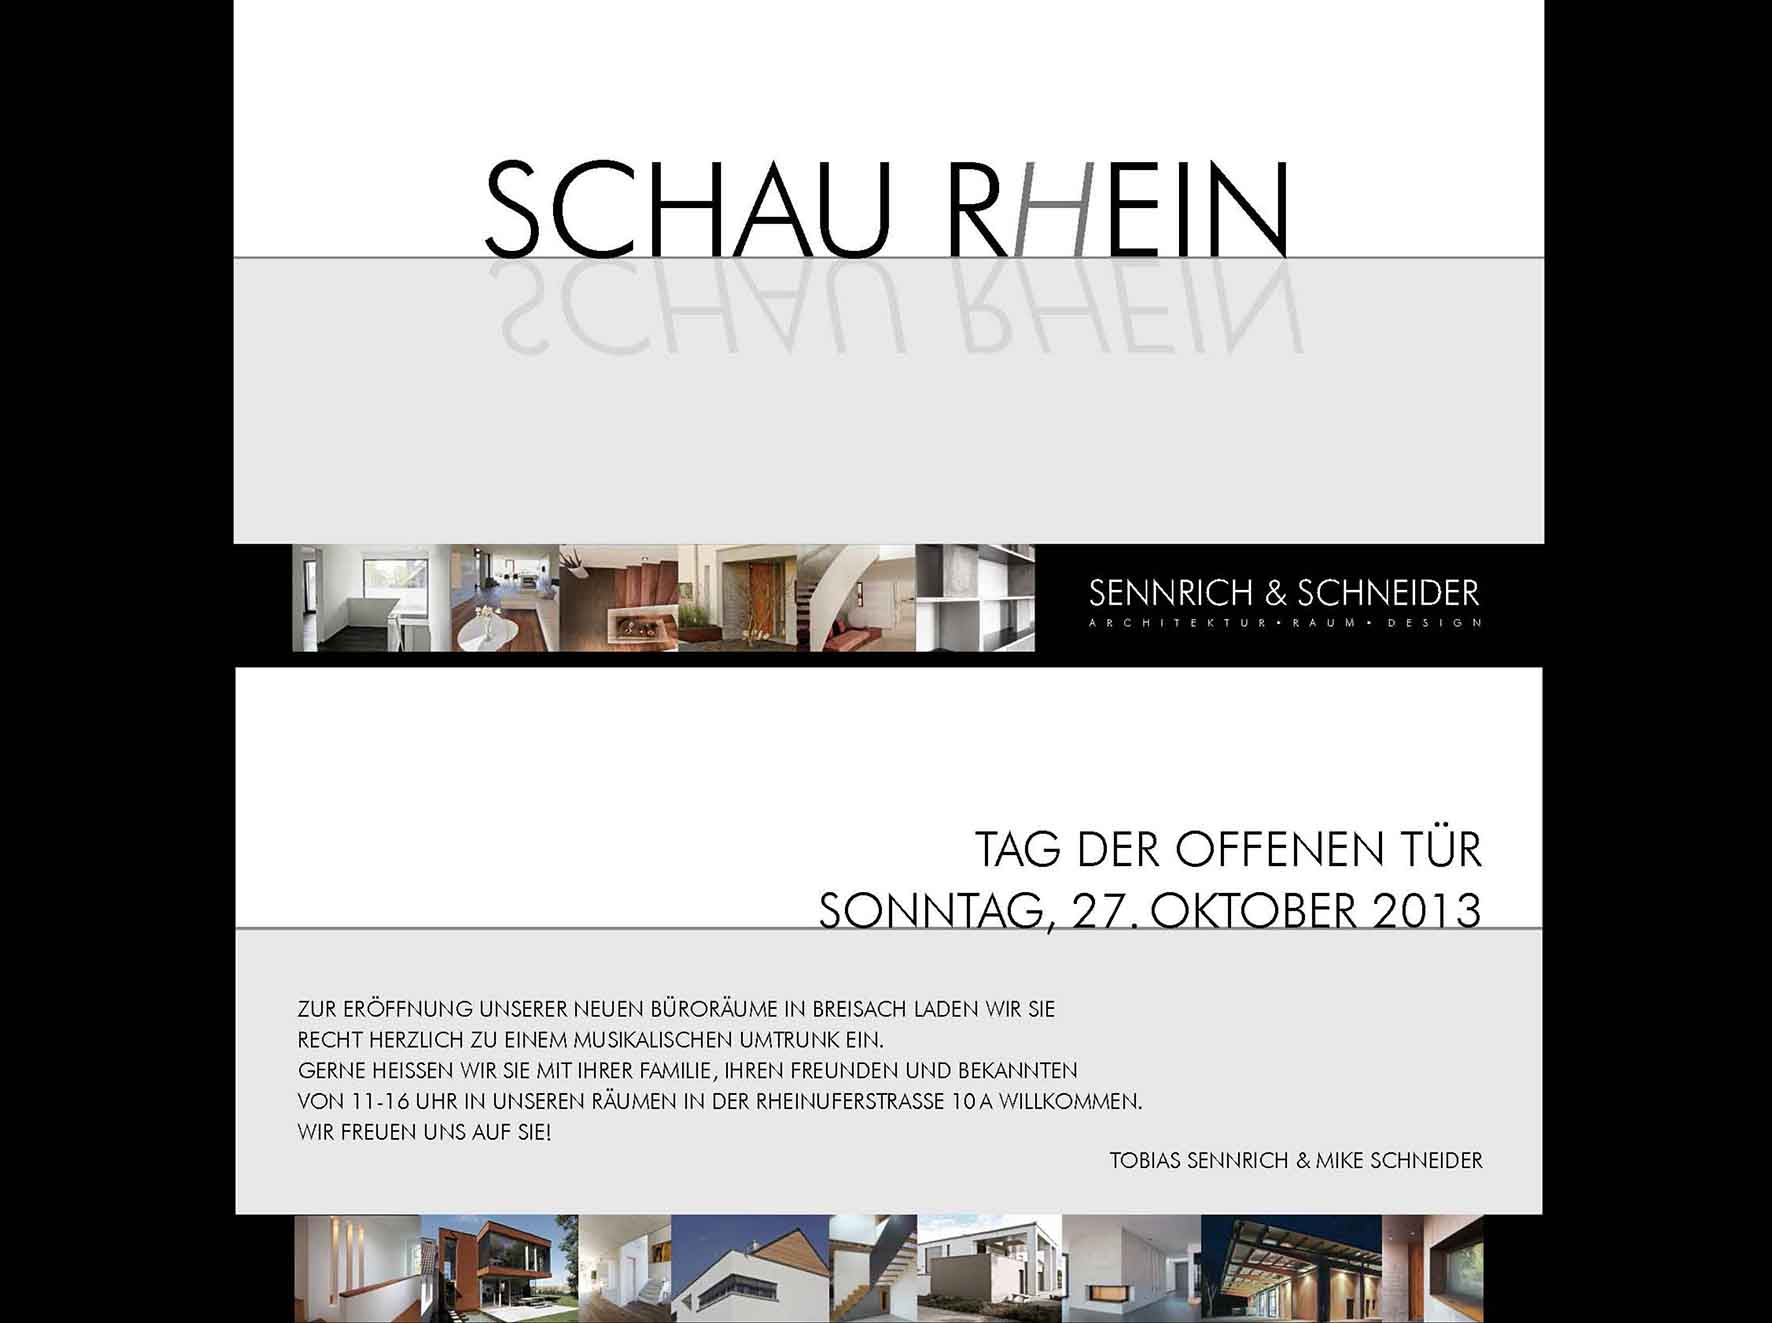 einladung tag der offenen t r sennrich und schneider gmbb. Black Bedroom Furniture Sets. Home Design Ideas